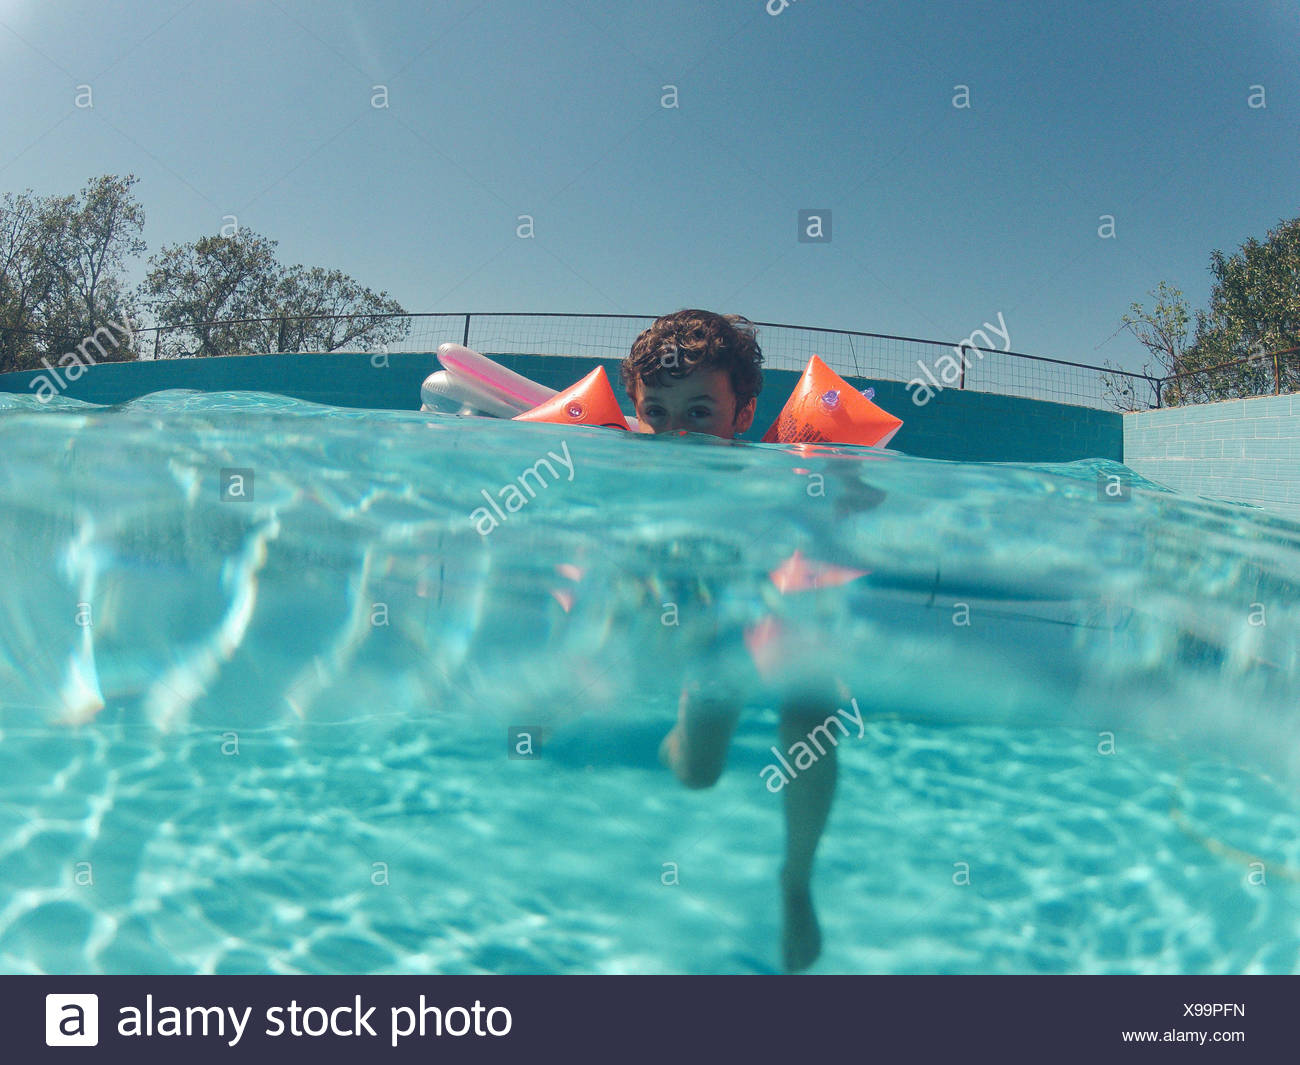 Portrait Of Boy Swimming In Pool against Sky Photo Stock